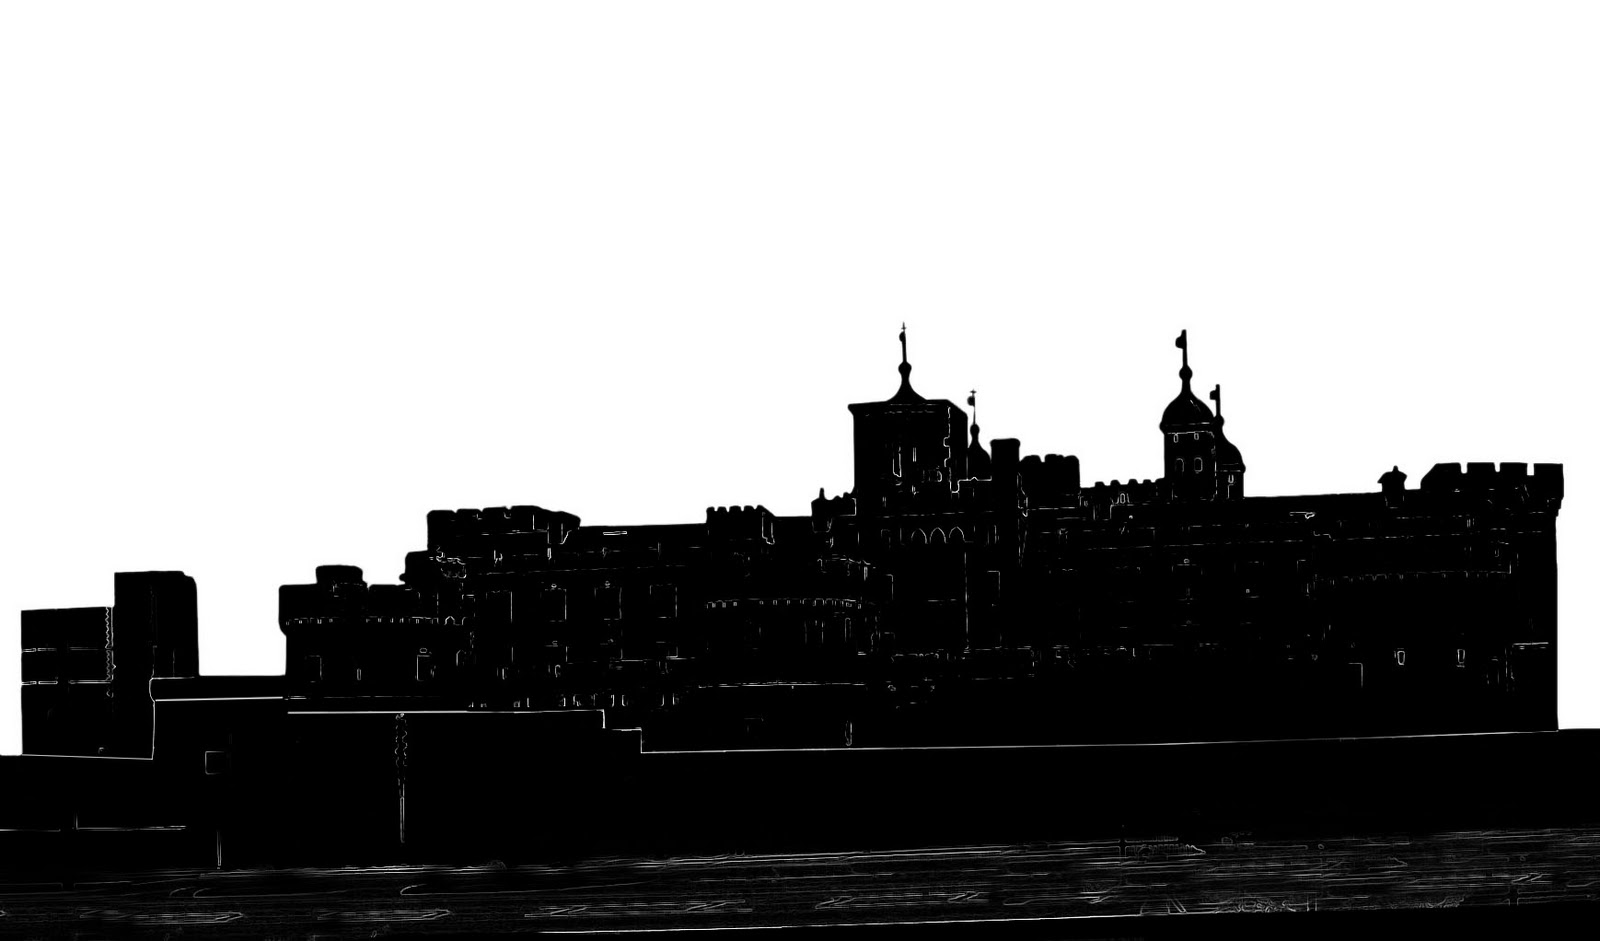 victorian london skyline victorian london skyline silhouette free vector silhouettes skyline london victorian